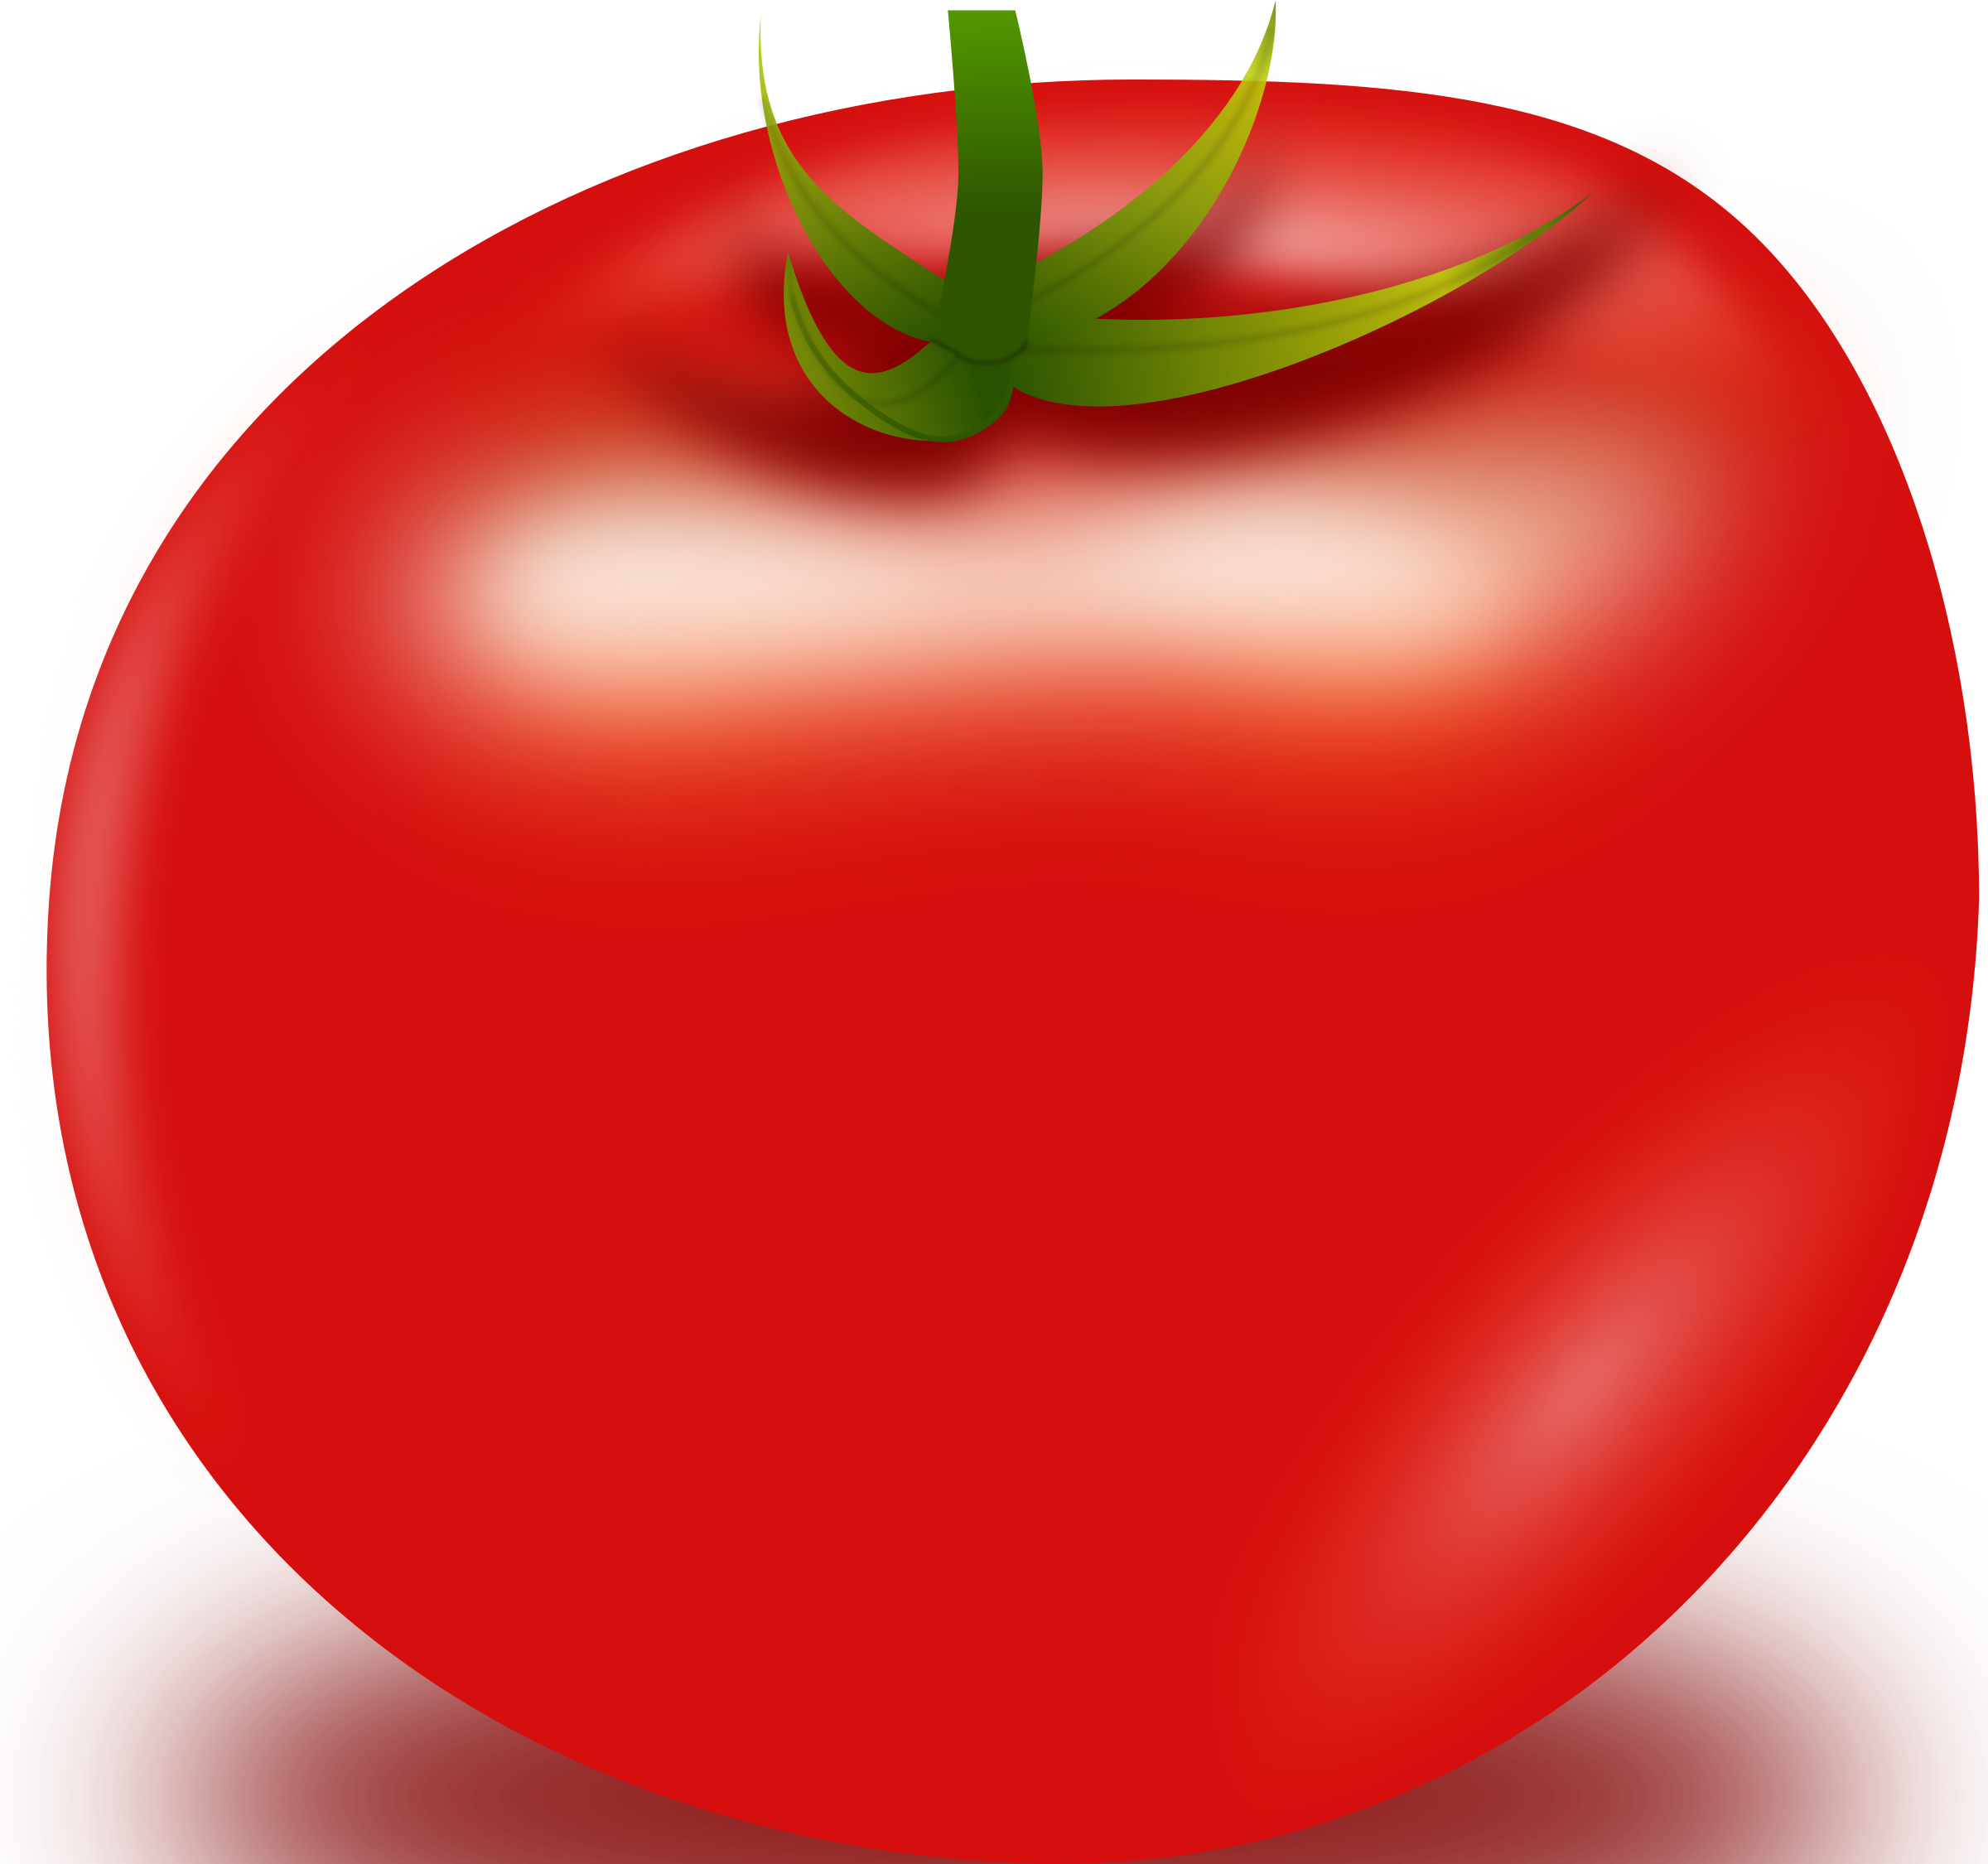 Vector Tomato by anonim76